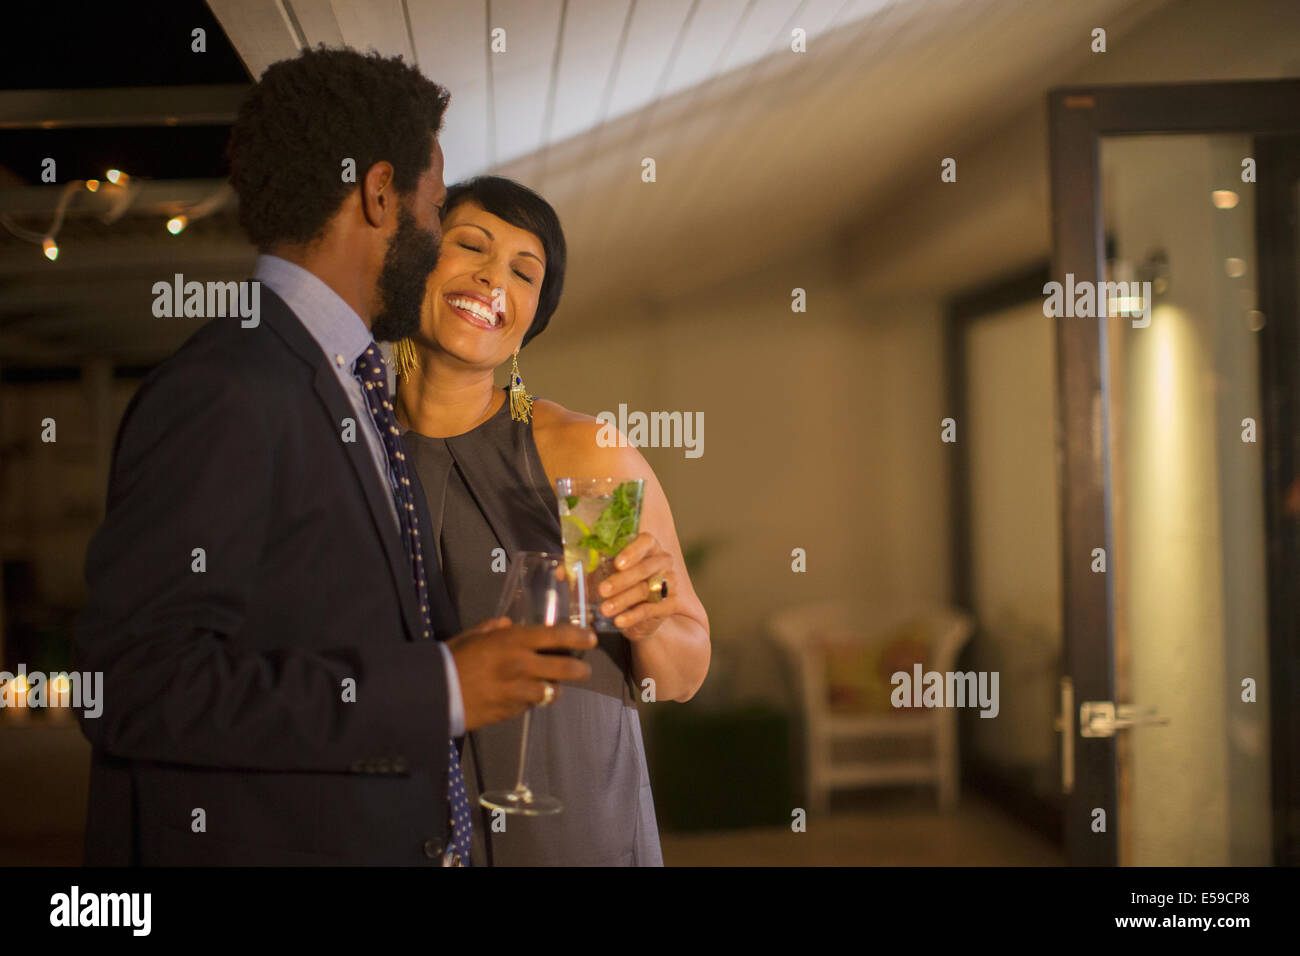 Couple kissing at party - Stock Image